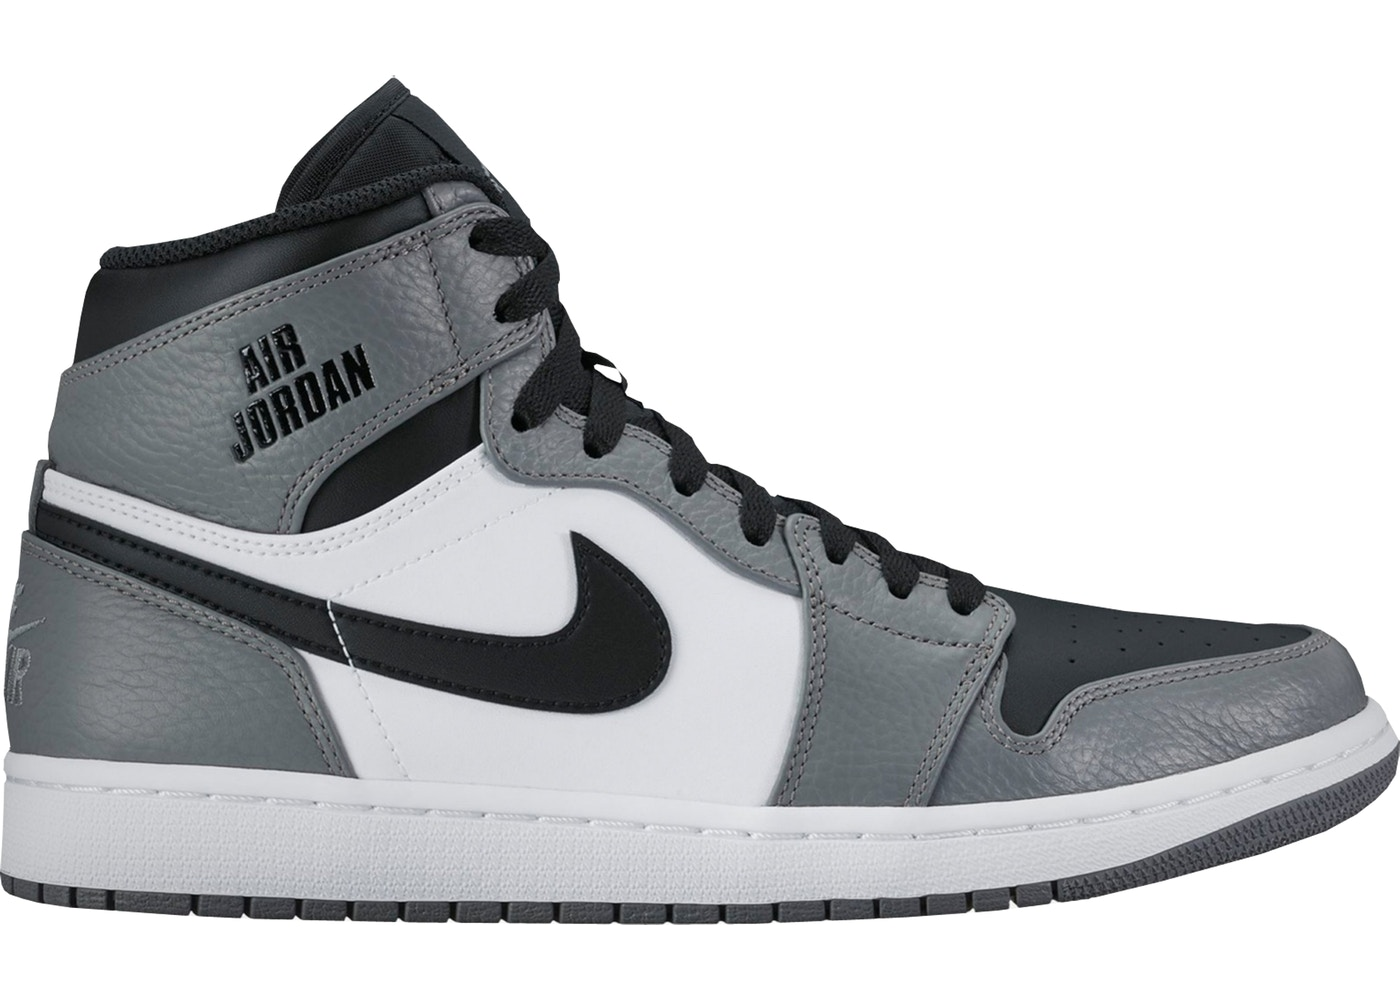 timeless design 28bba bc828 Jordan 1 Retro Rare Air Cool Grey